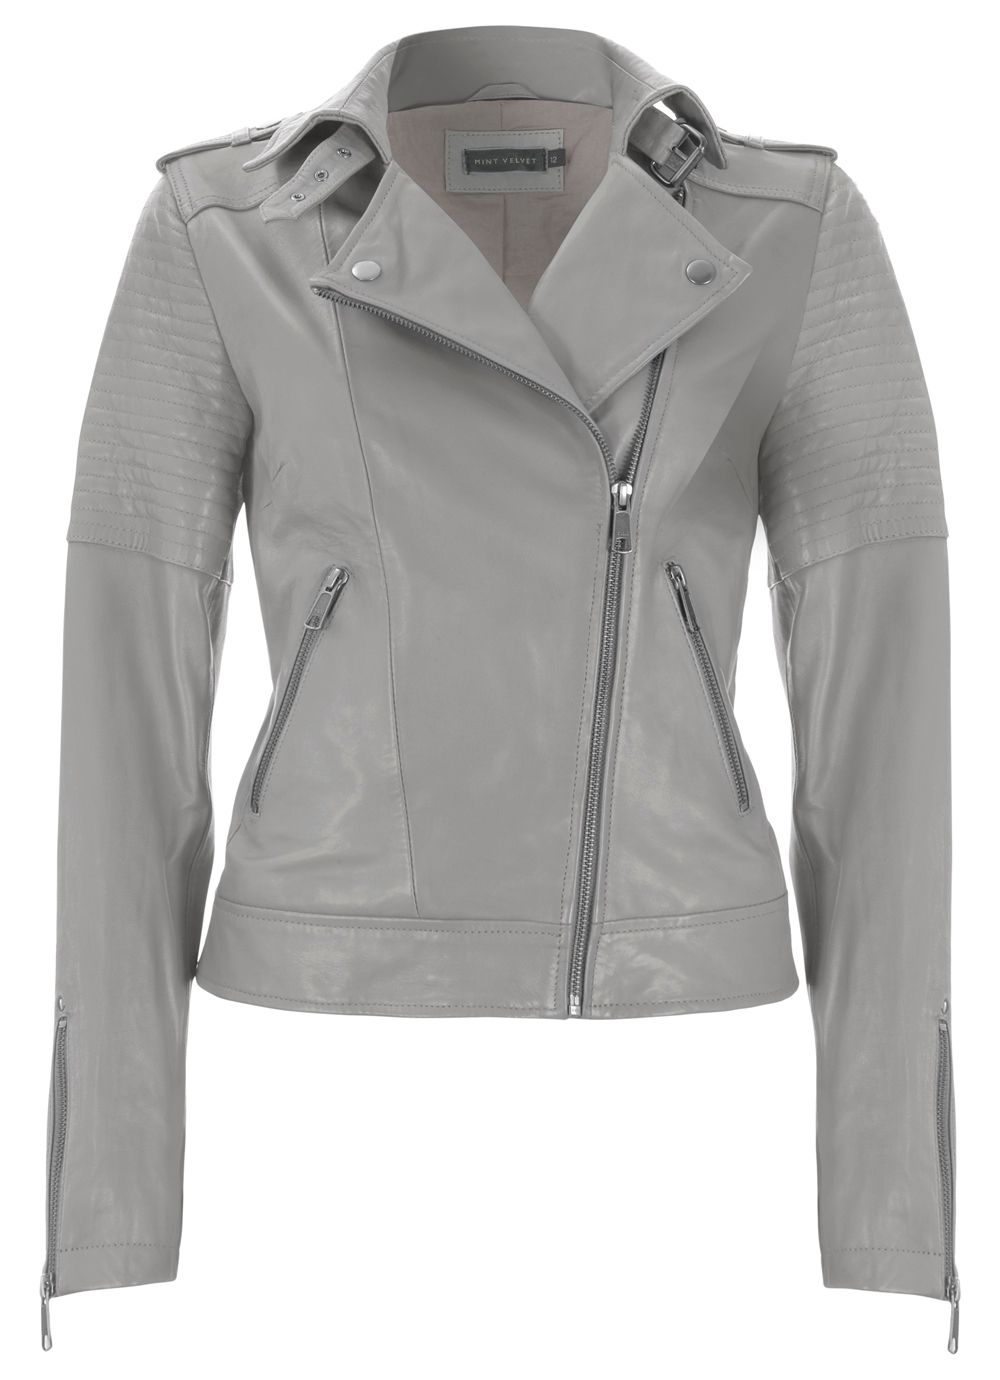 Pearl zip leather biker jacket